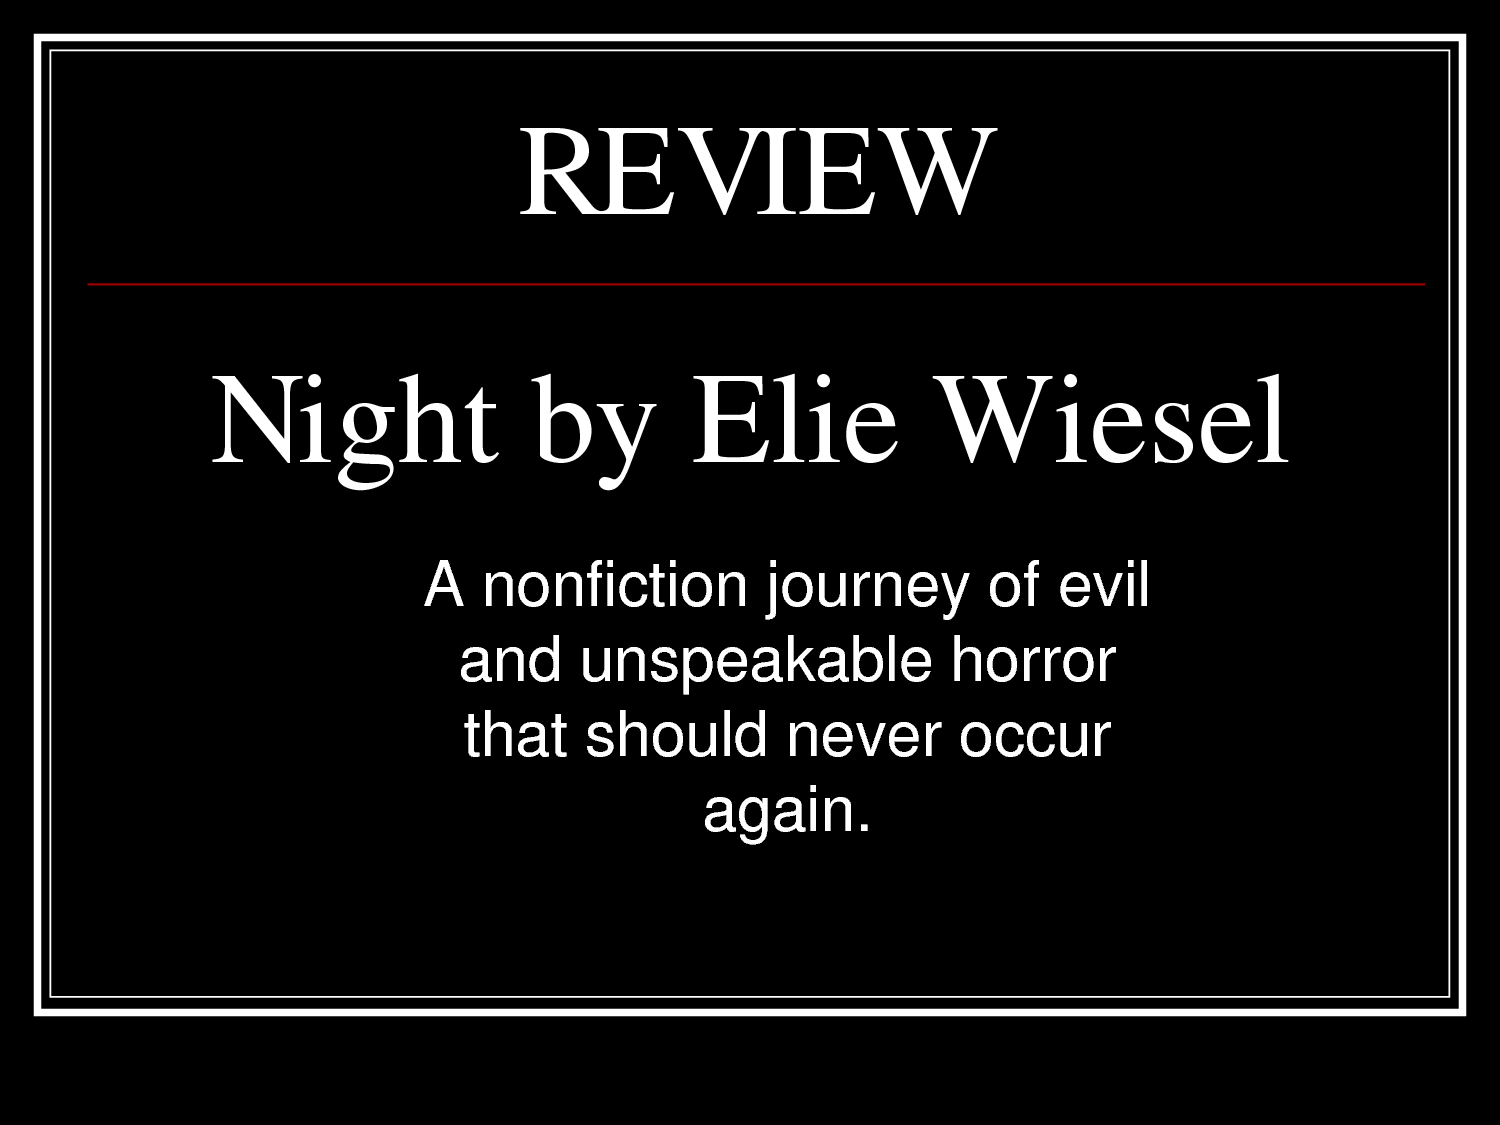 night elie wiesel Elie wiesel was 15 when the nazis came for the 15,000 jews of his hometown of sighet, transylvania, in may 1944 upon arrival at auschwitz-birkenau, his mother and sister were murdered.